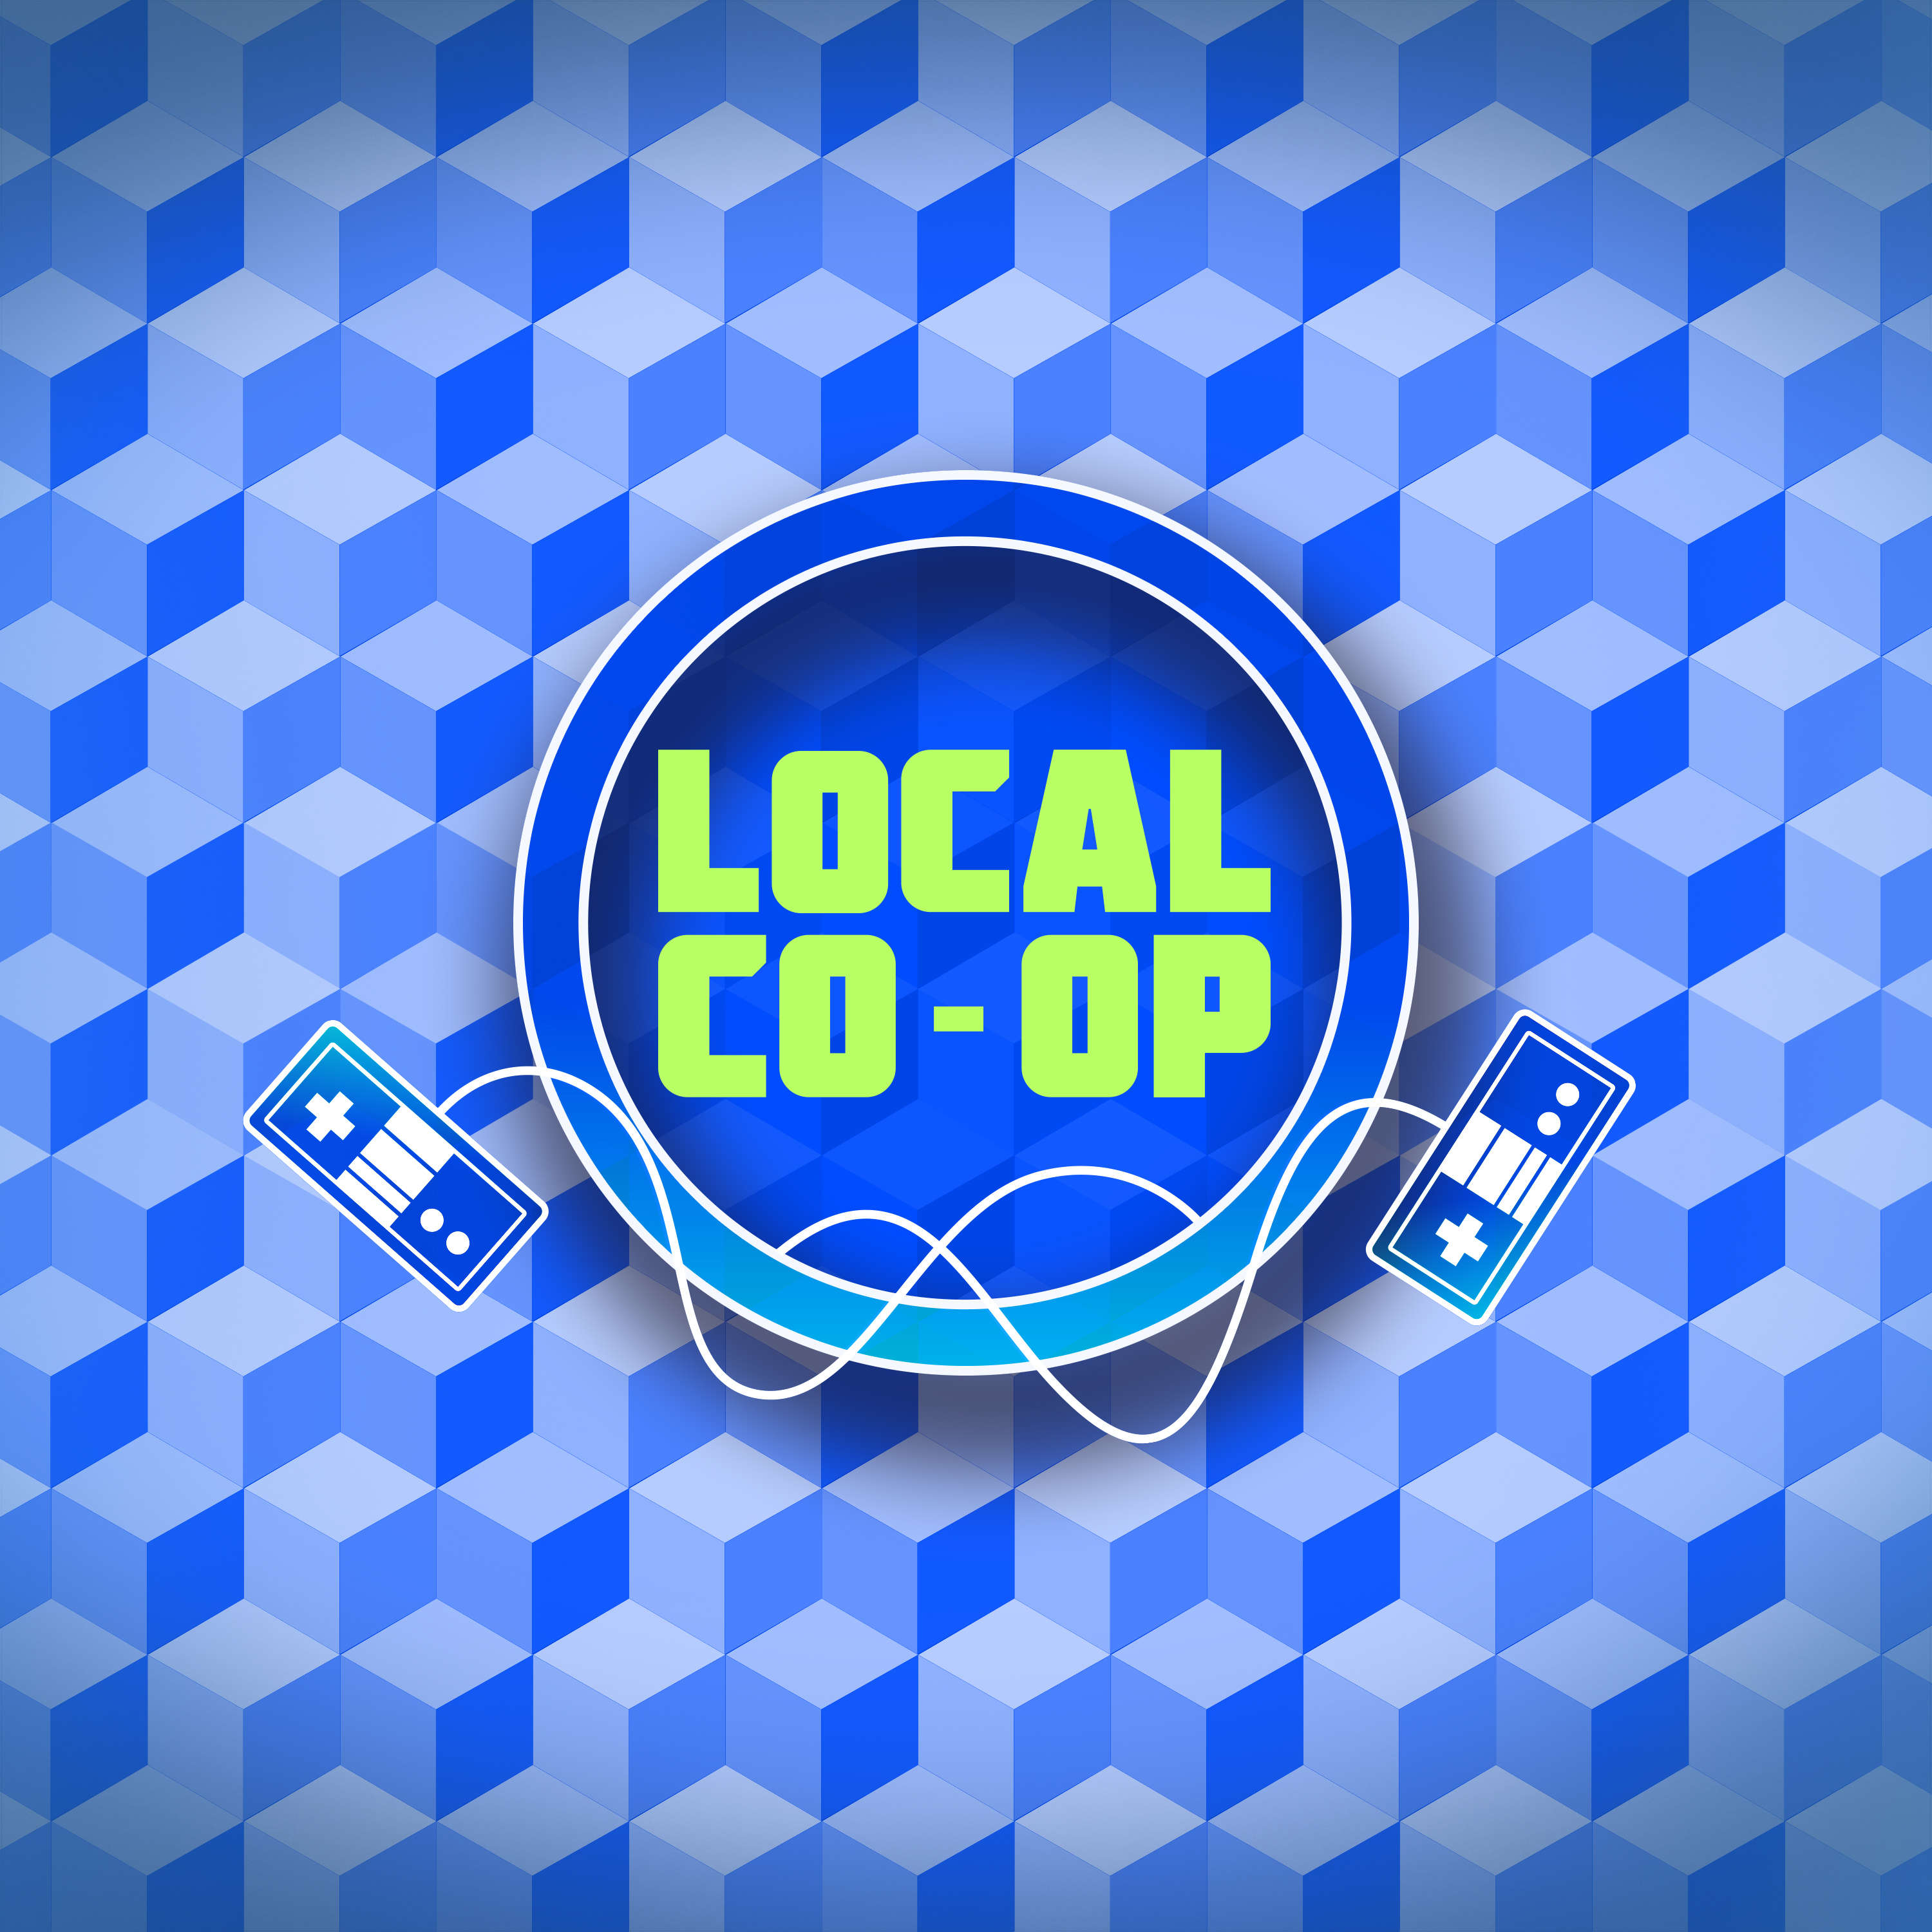 LOCAL CO-OP: Episode 3 - Character Cameos and Crossovers